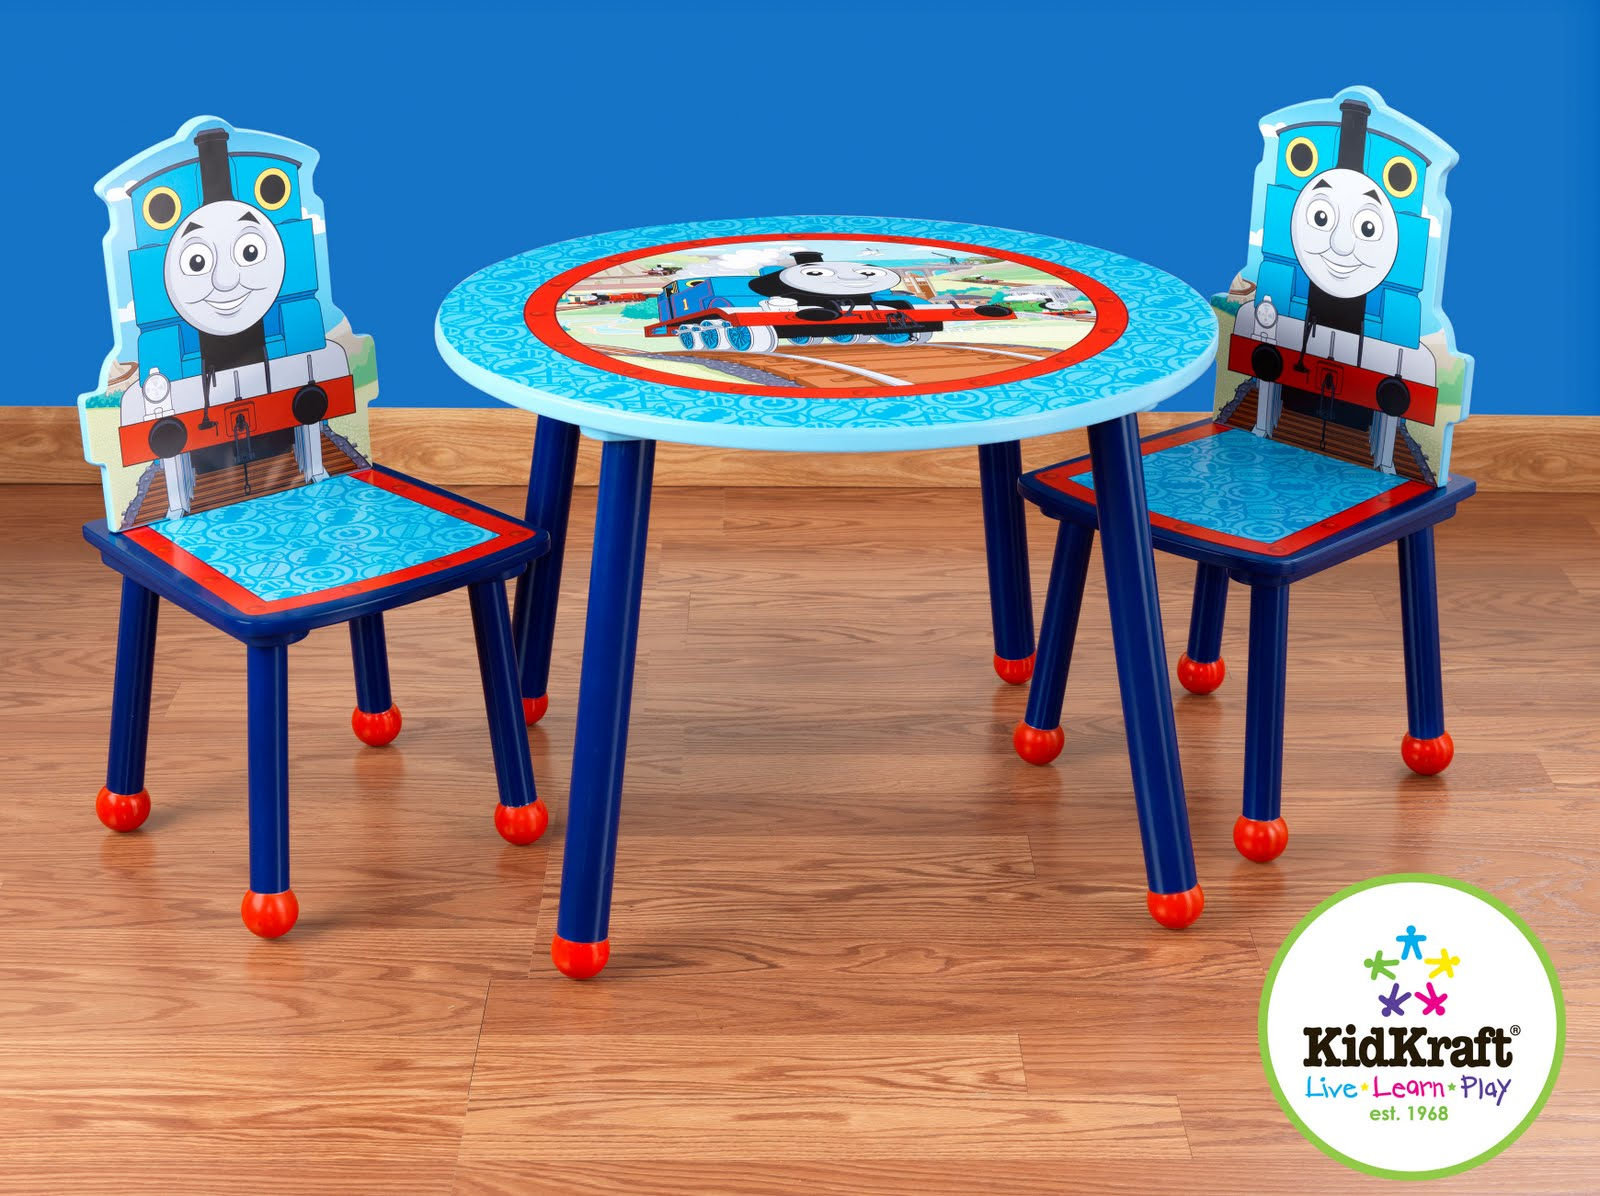 Superb Kidkraft Thomas And Friends Furniture Finds Success Full Steam Ahead